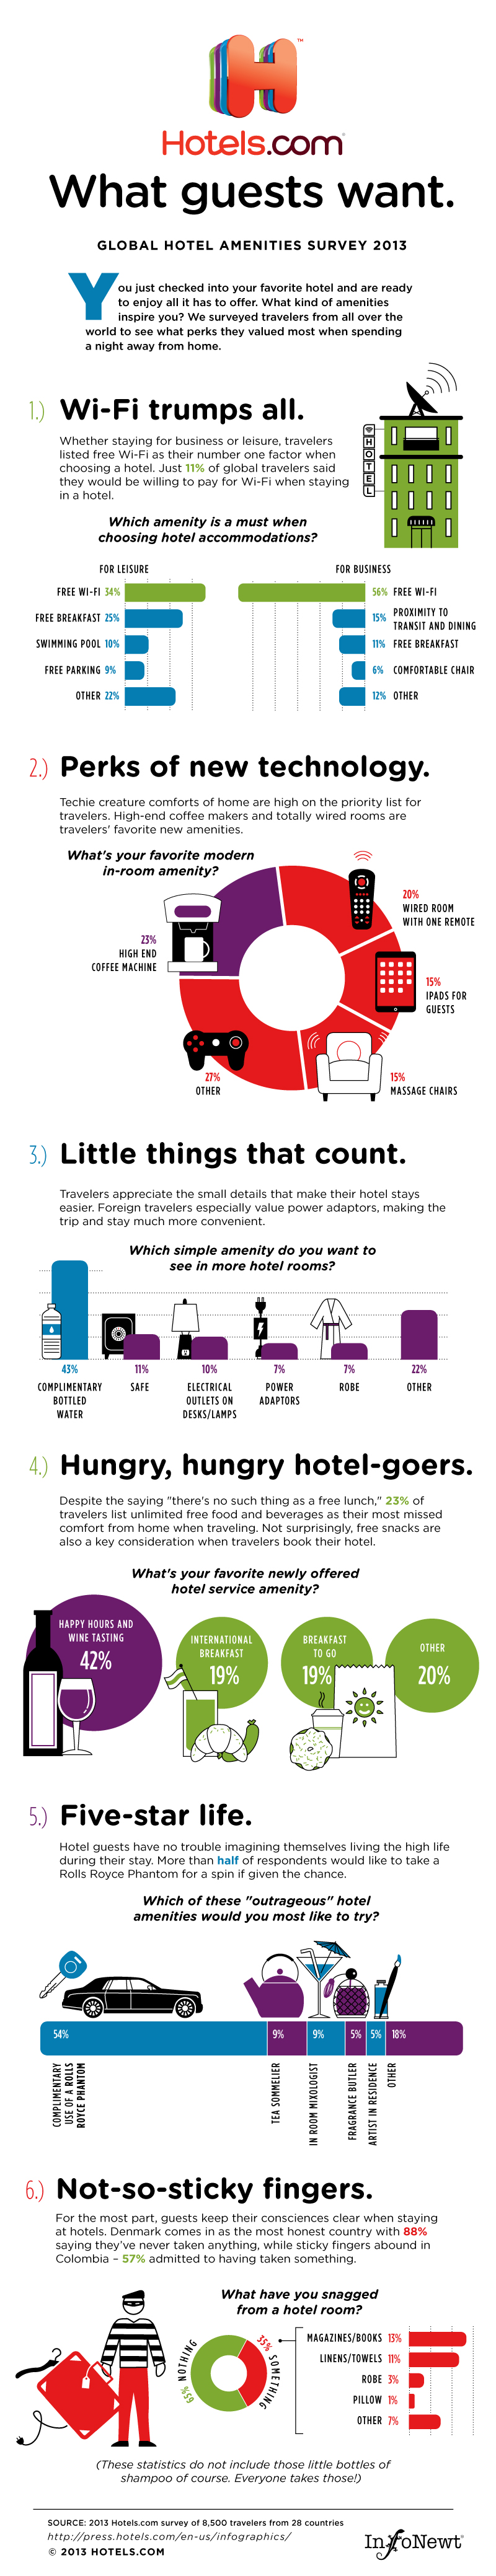 Hotels.com 2013 Amenities Survey: What Guests Want